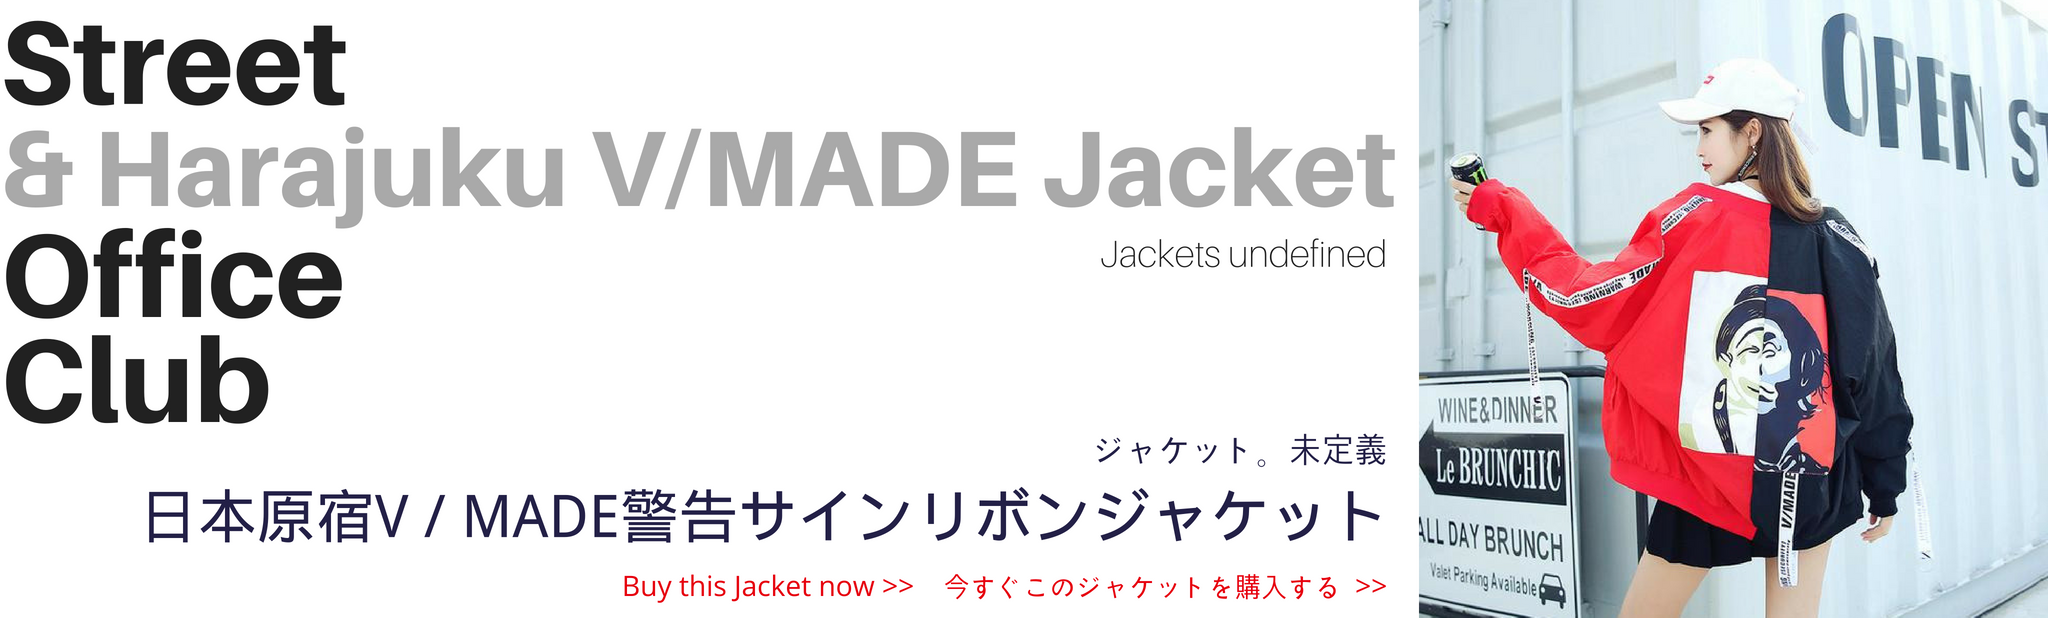 miTeigi Womans Jackets Collection - Japanese Harajuku V/MADE Warning Sign Ribbon Jacket   日本原宿V / MADE警告サインリボンジャケット